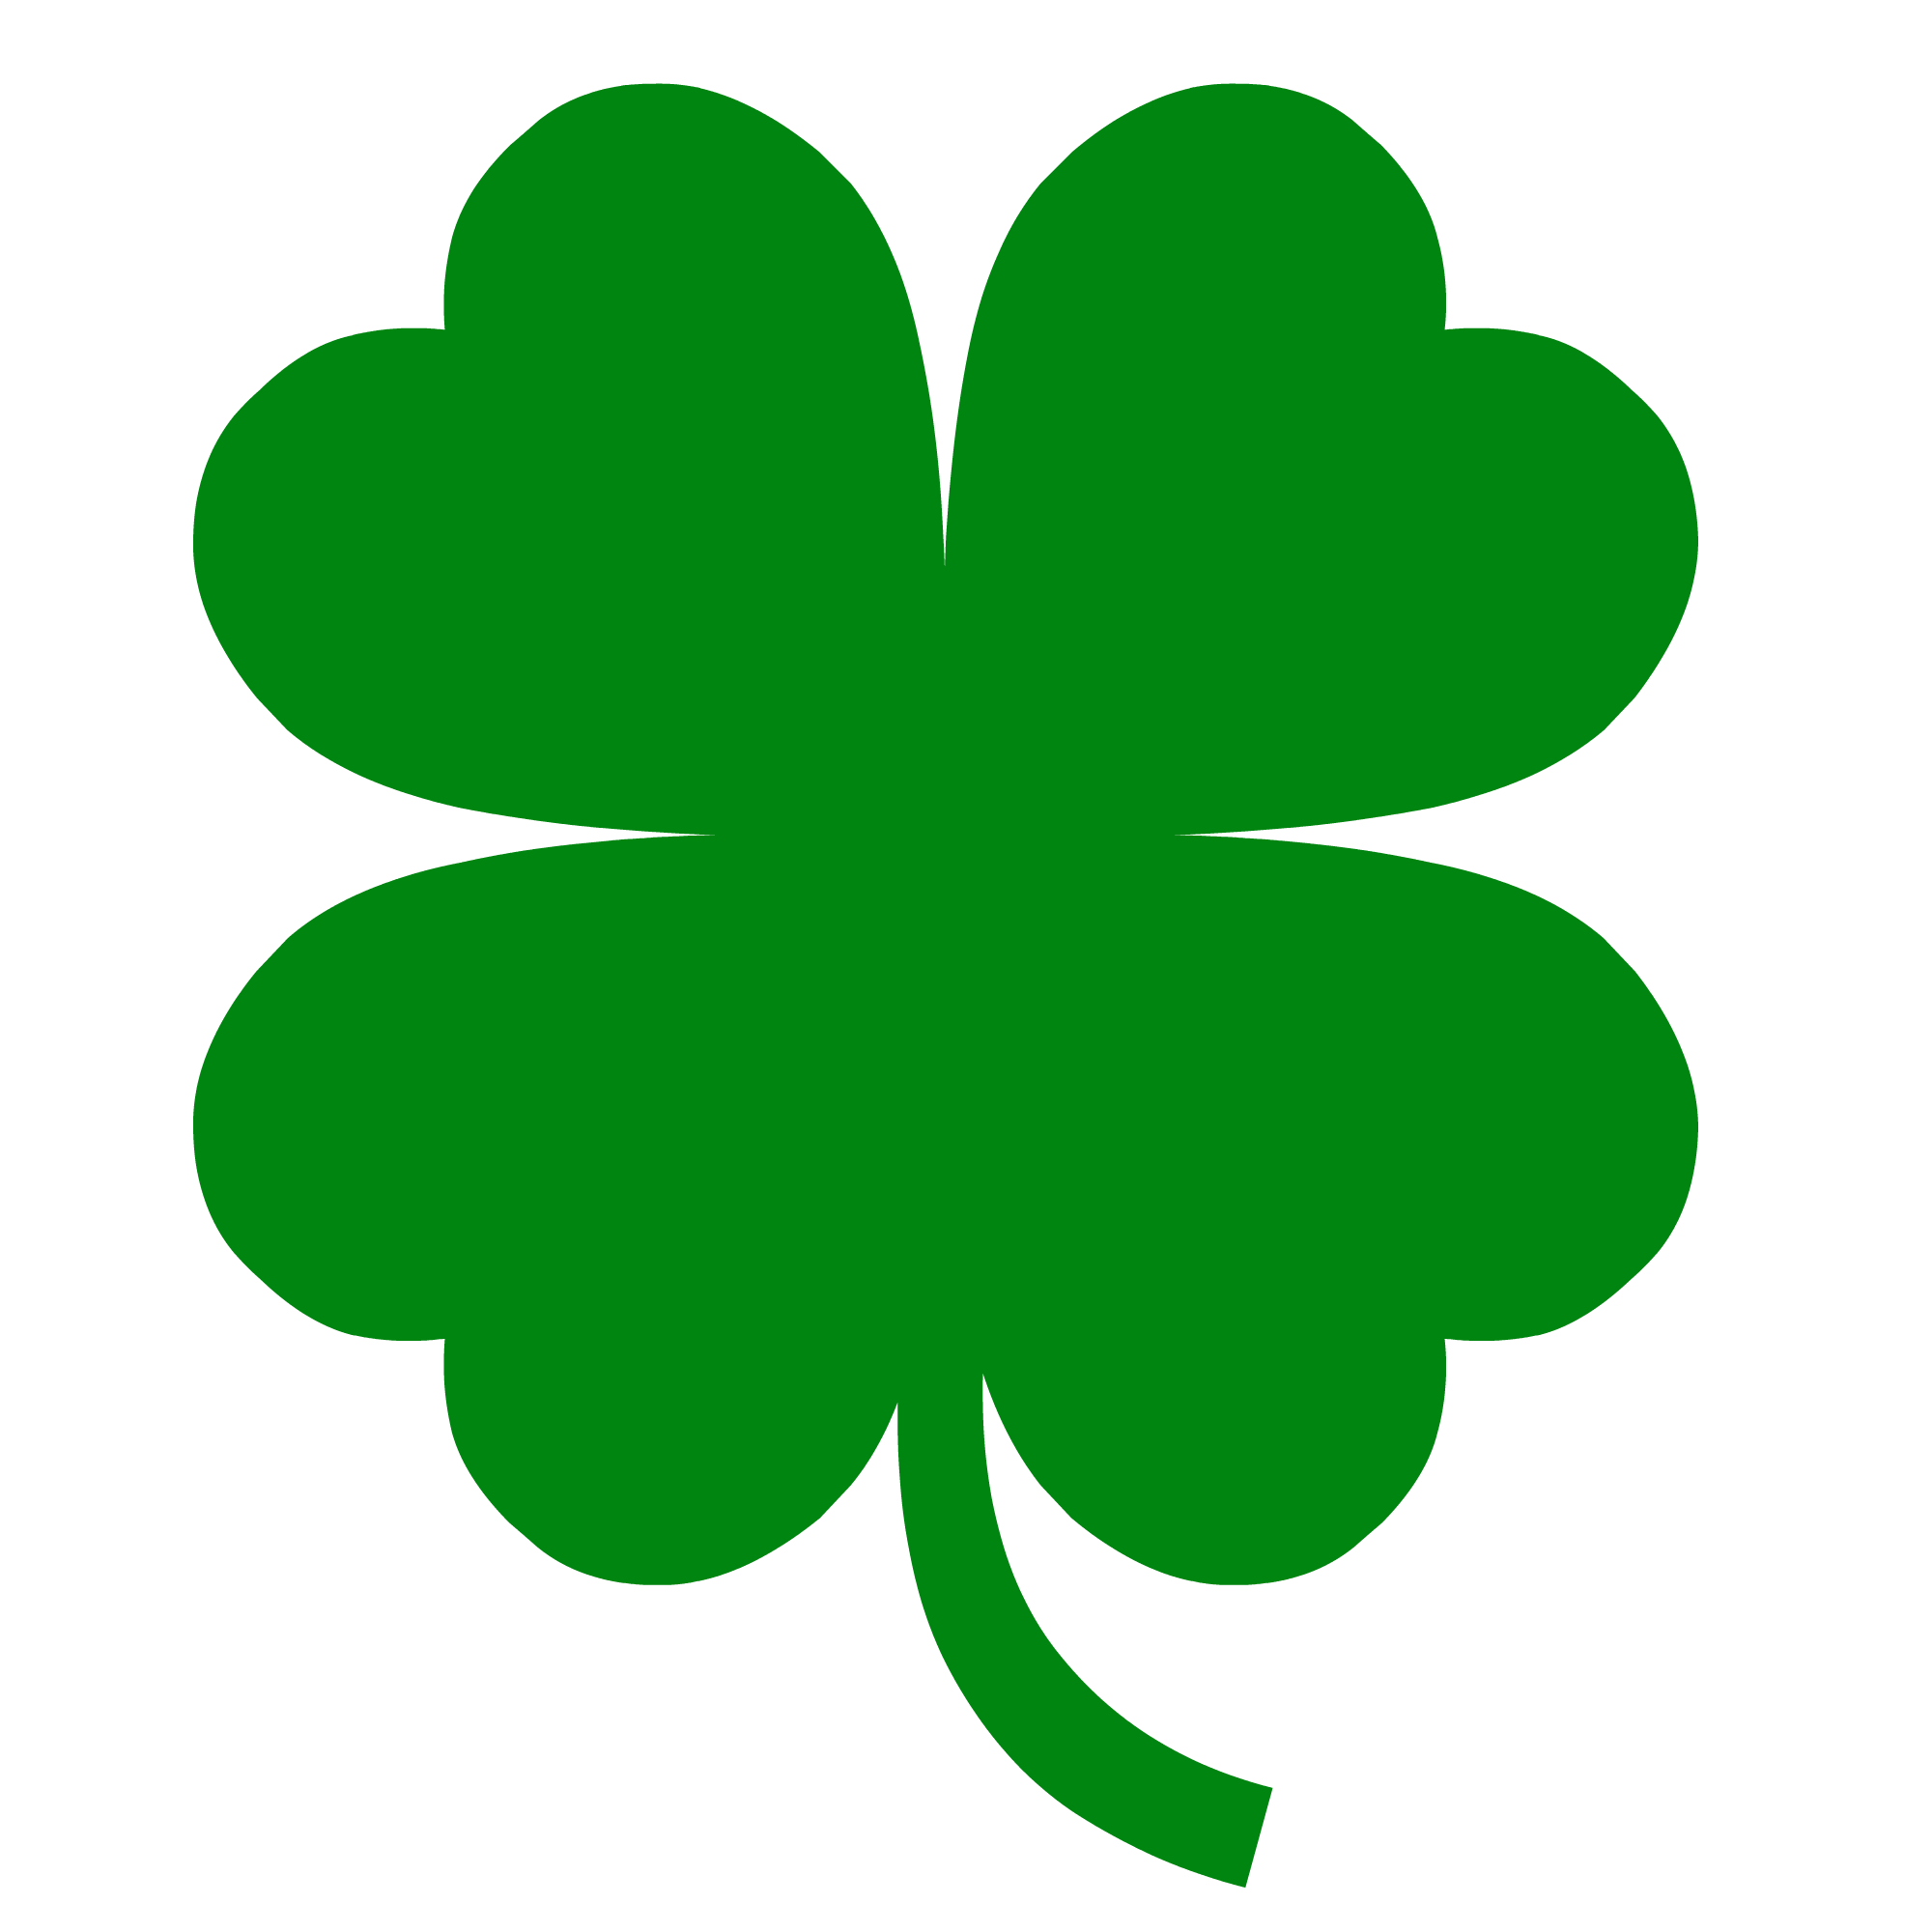 2000x2000 Introducing Images Of Four Leaf Clover Clip Ar